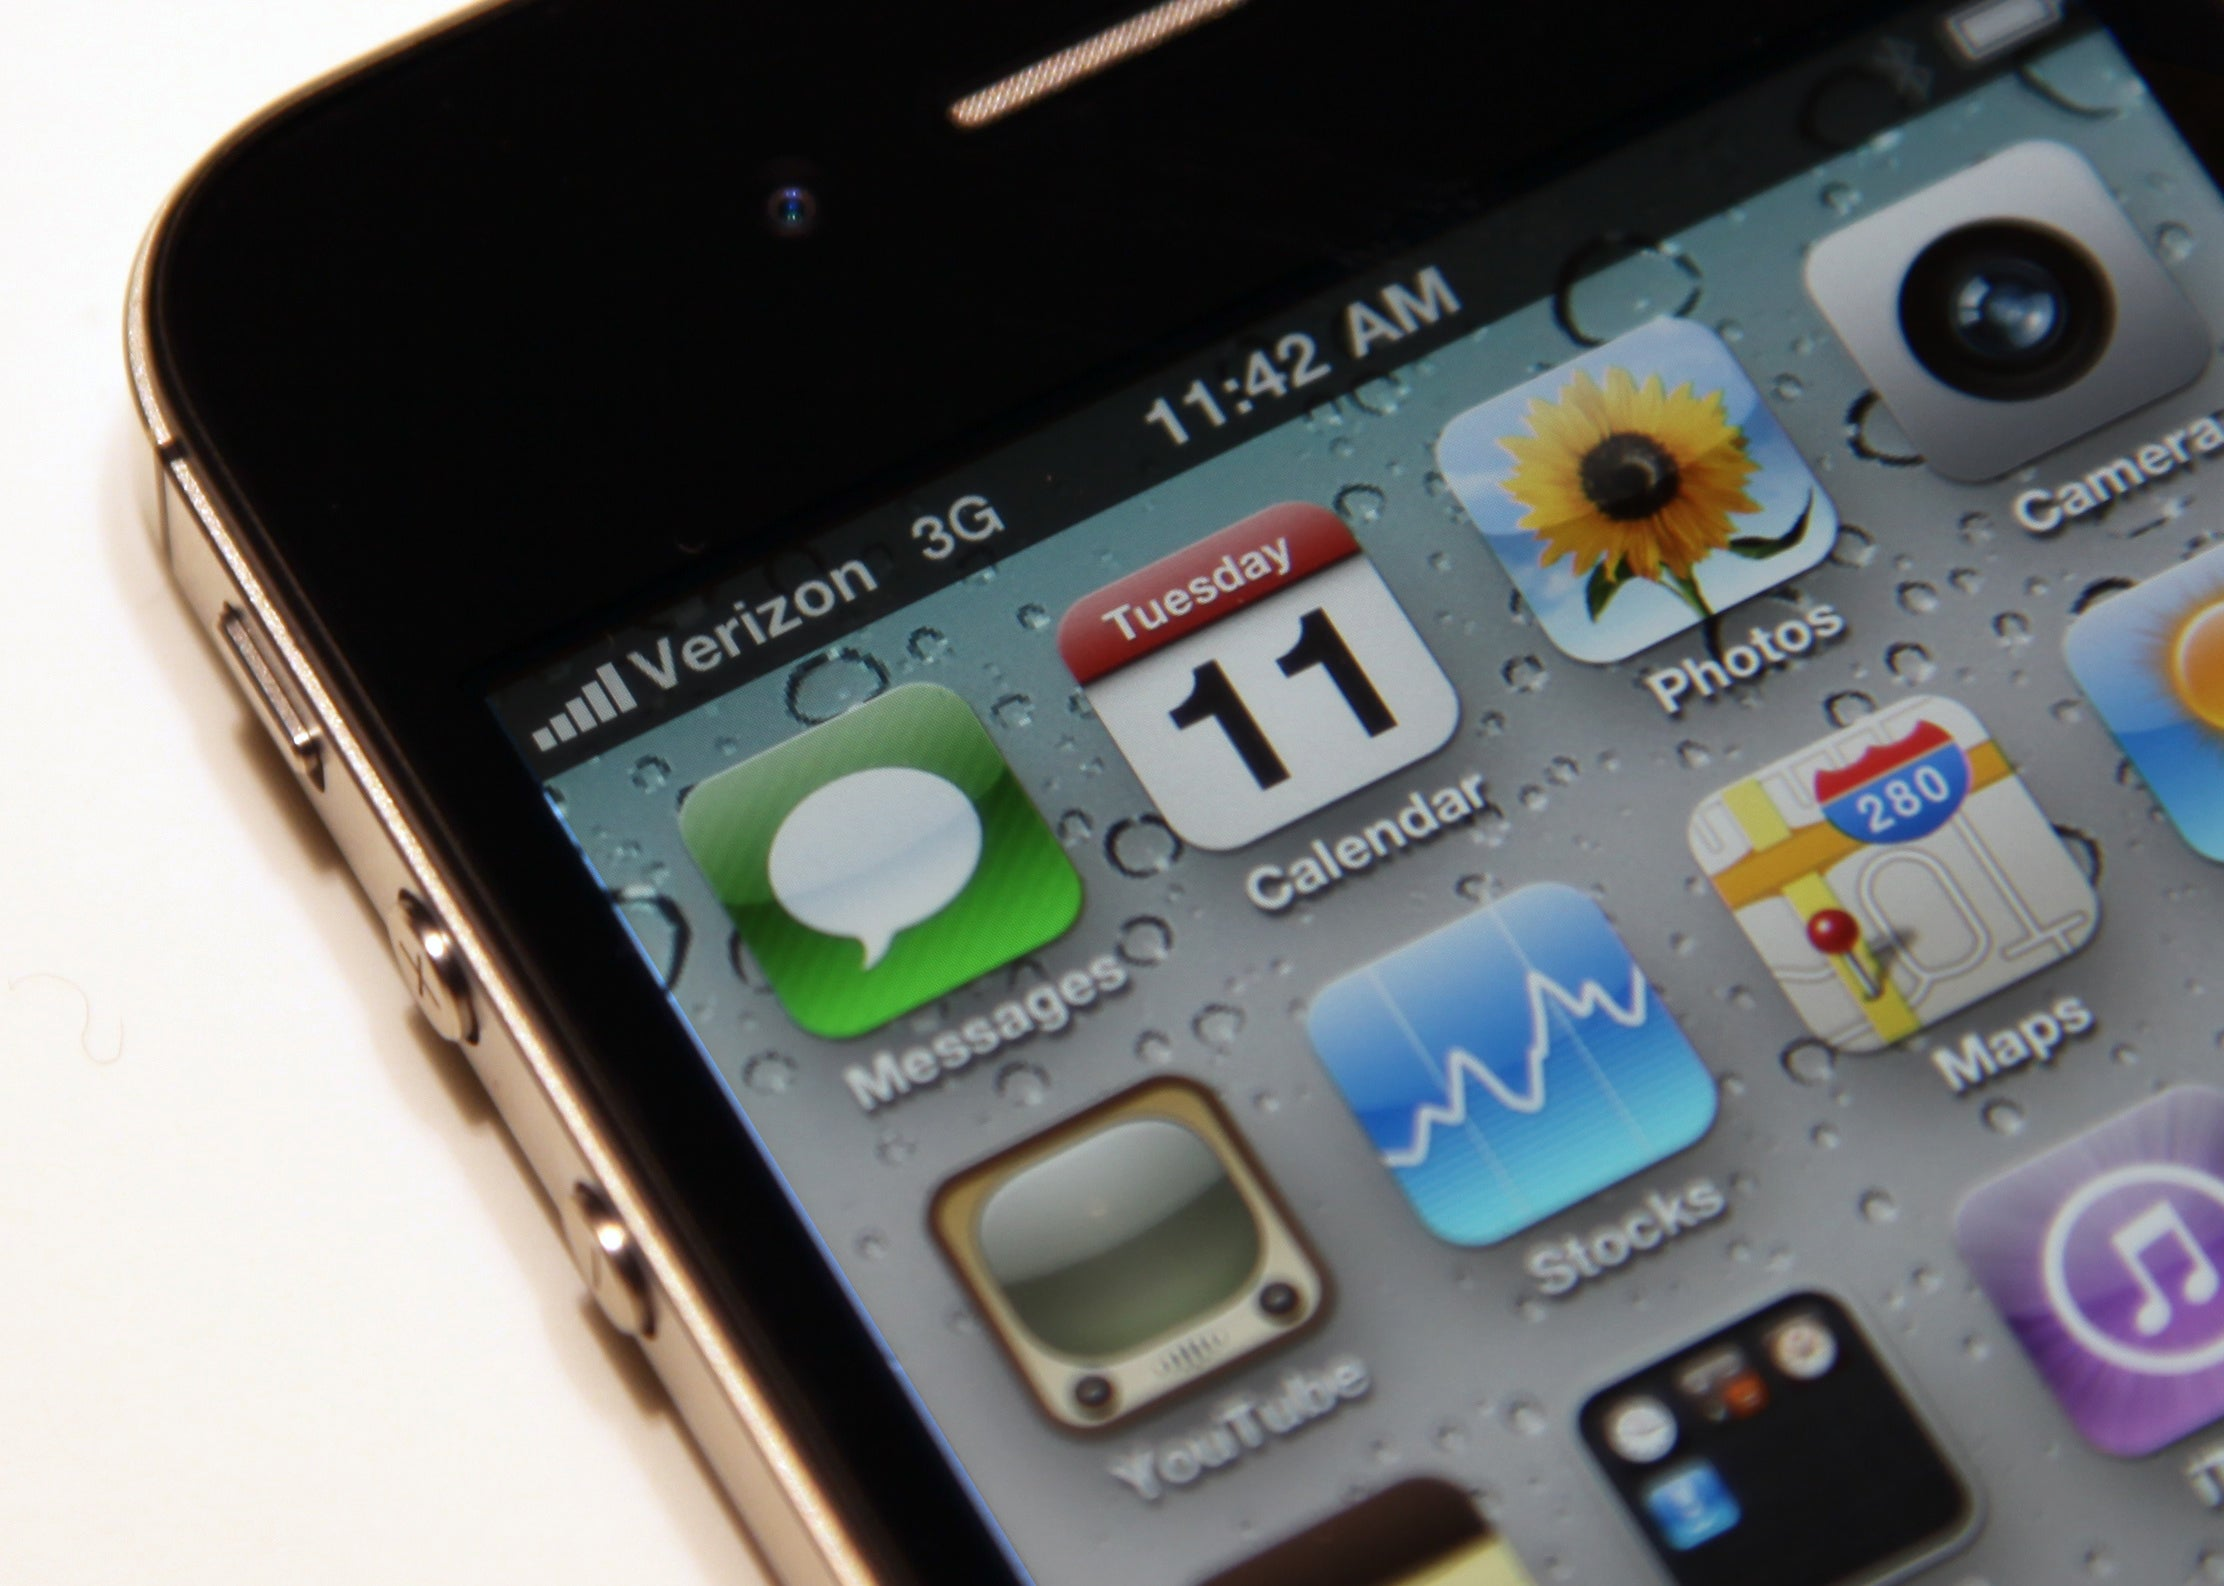 Hands On With Verizon's iPhone 4: Same Phone, Different Network